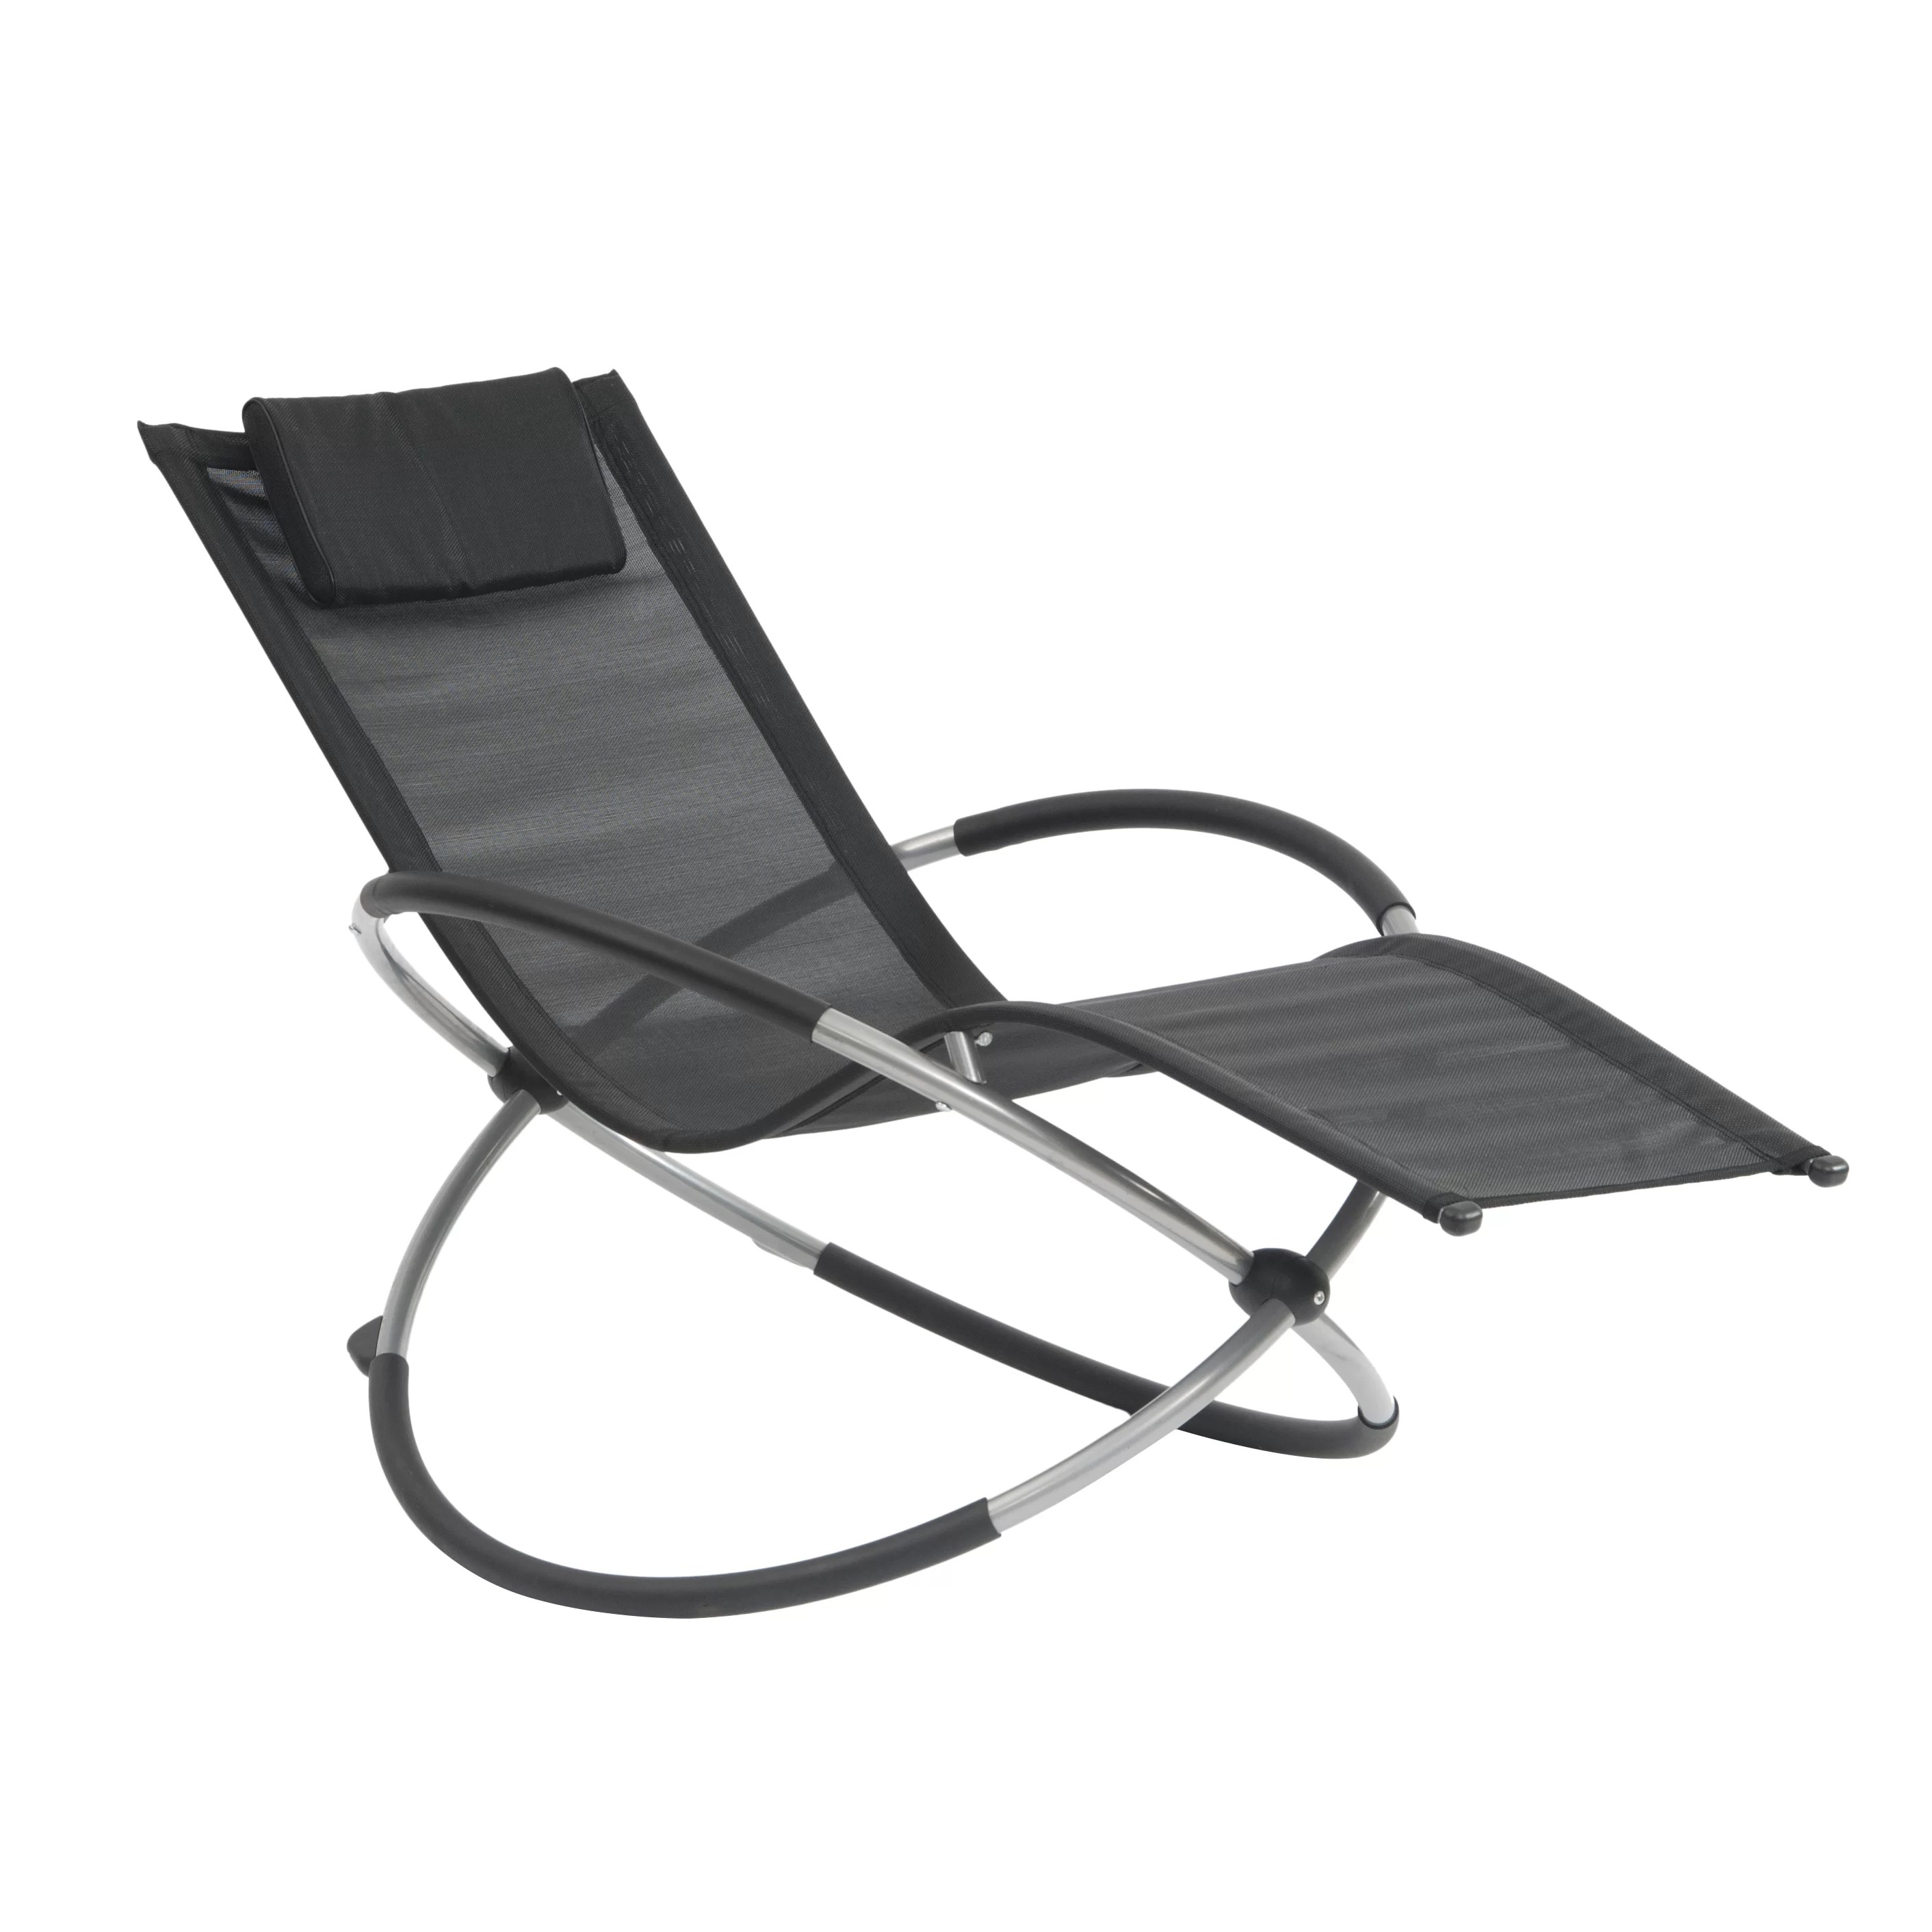 garden relaxer chair covers millennium tree stand suntime outdoor living orbit chaise lounge